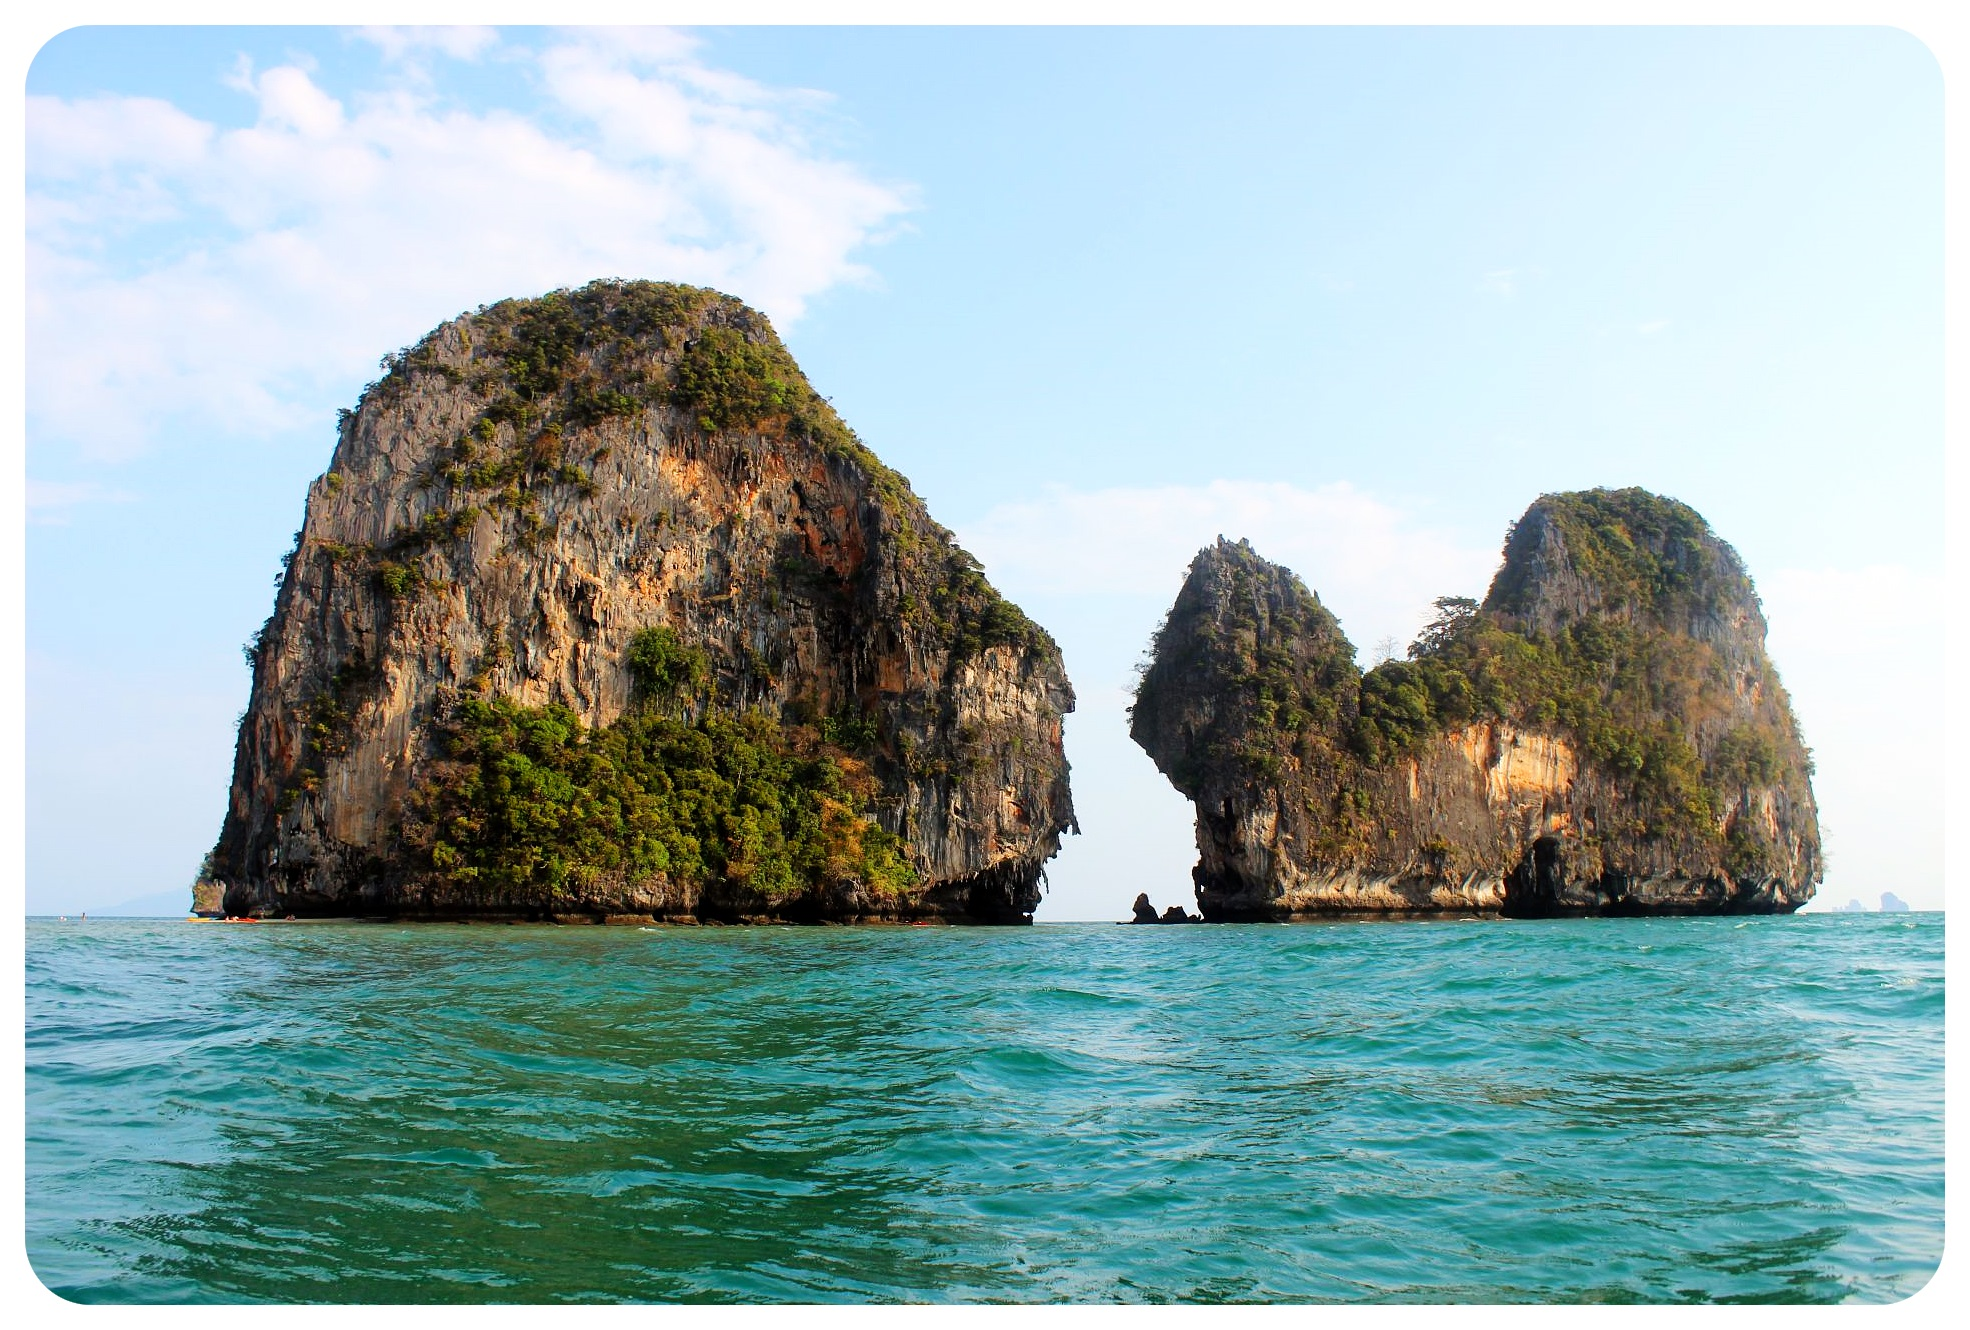 andaman sea islands near railay